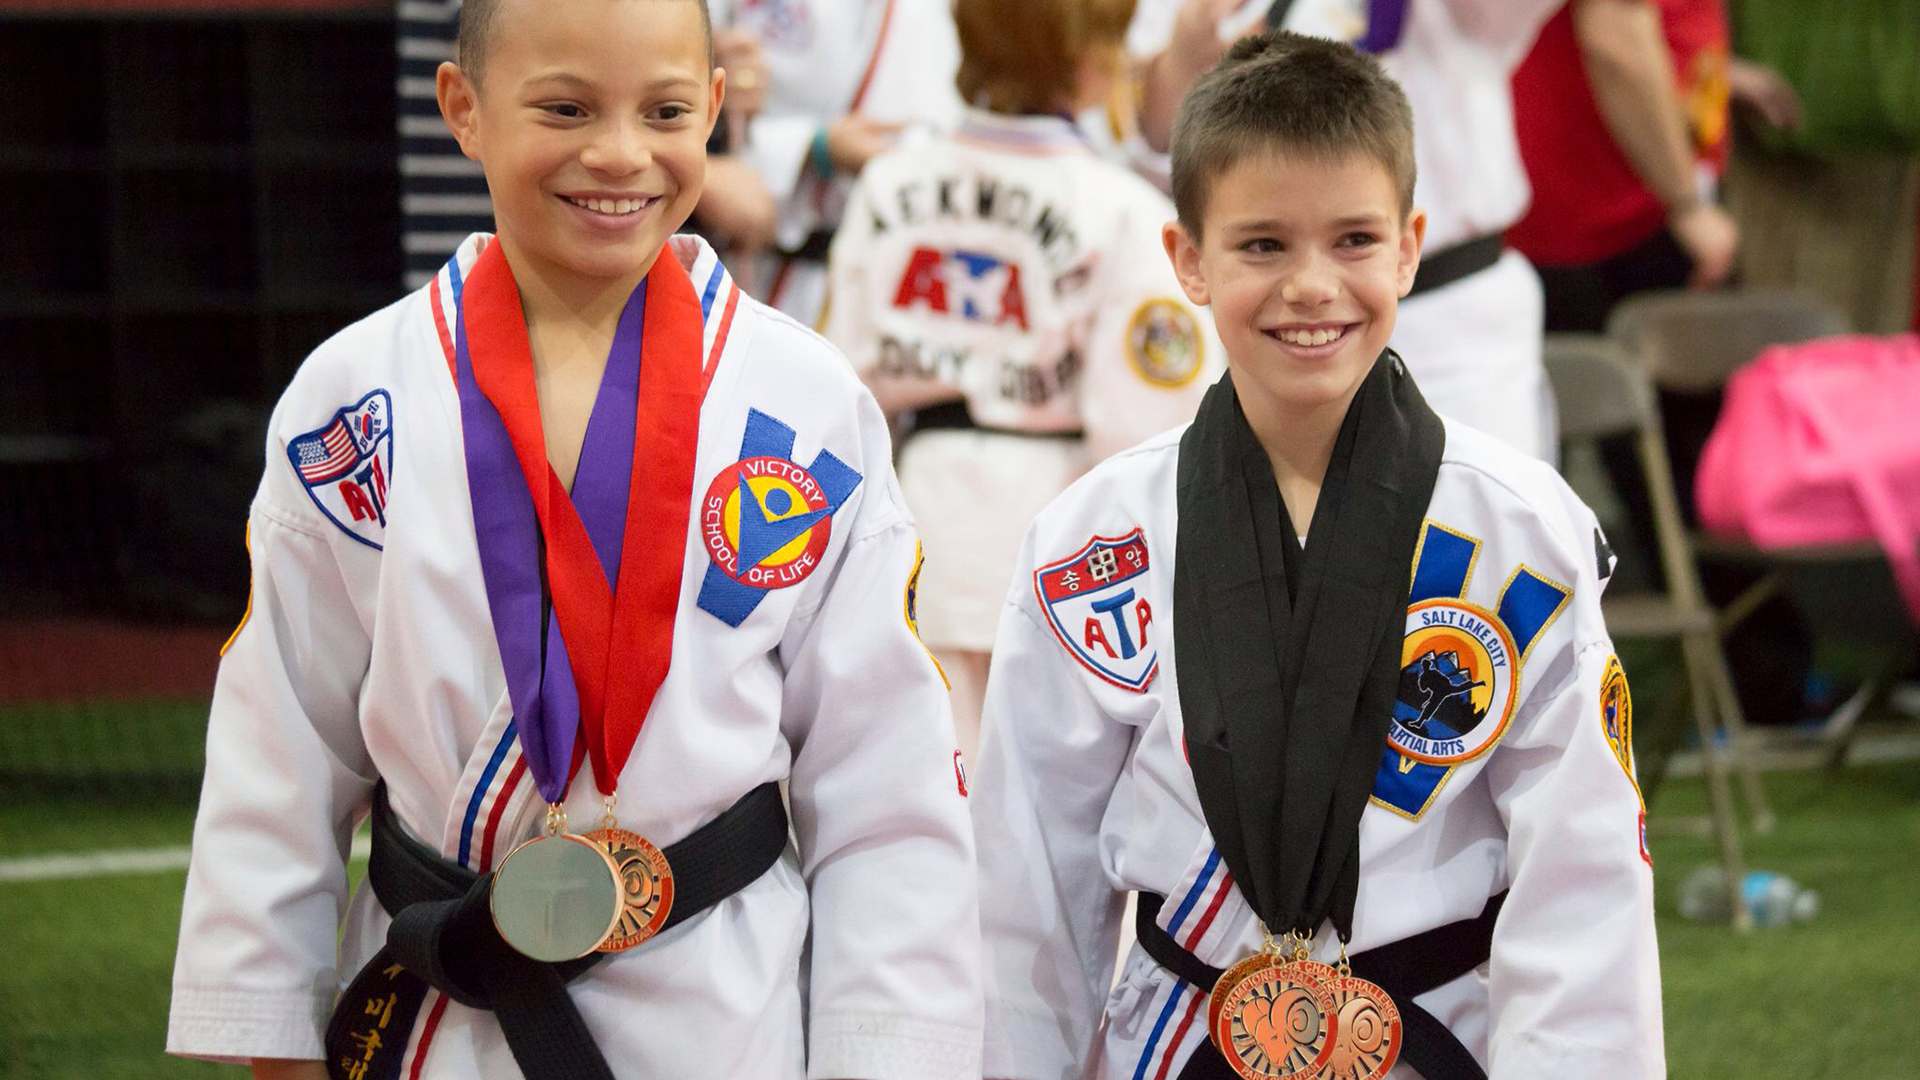 @ethanfineshriberofficial's cover photo for 'Taekwondo brings friends and confidence to 11-year-old boy with autism'